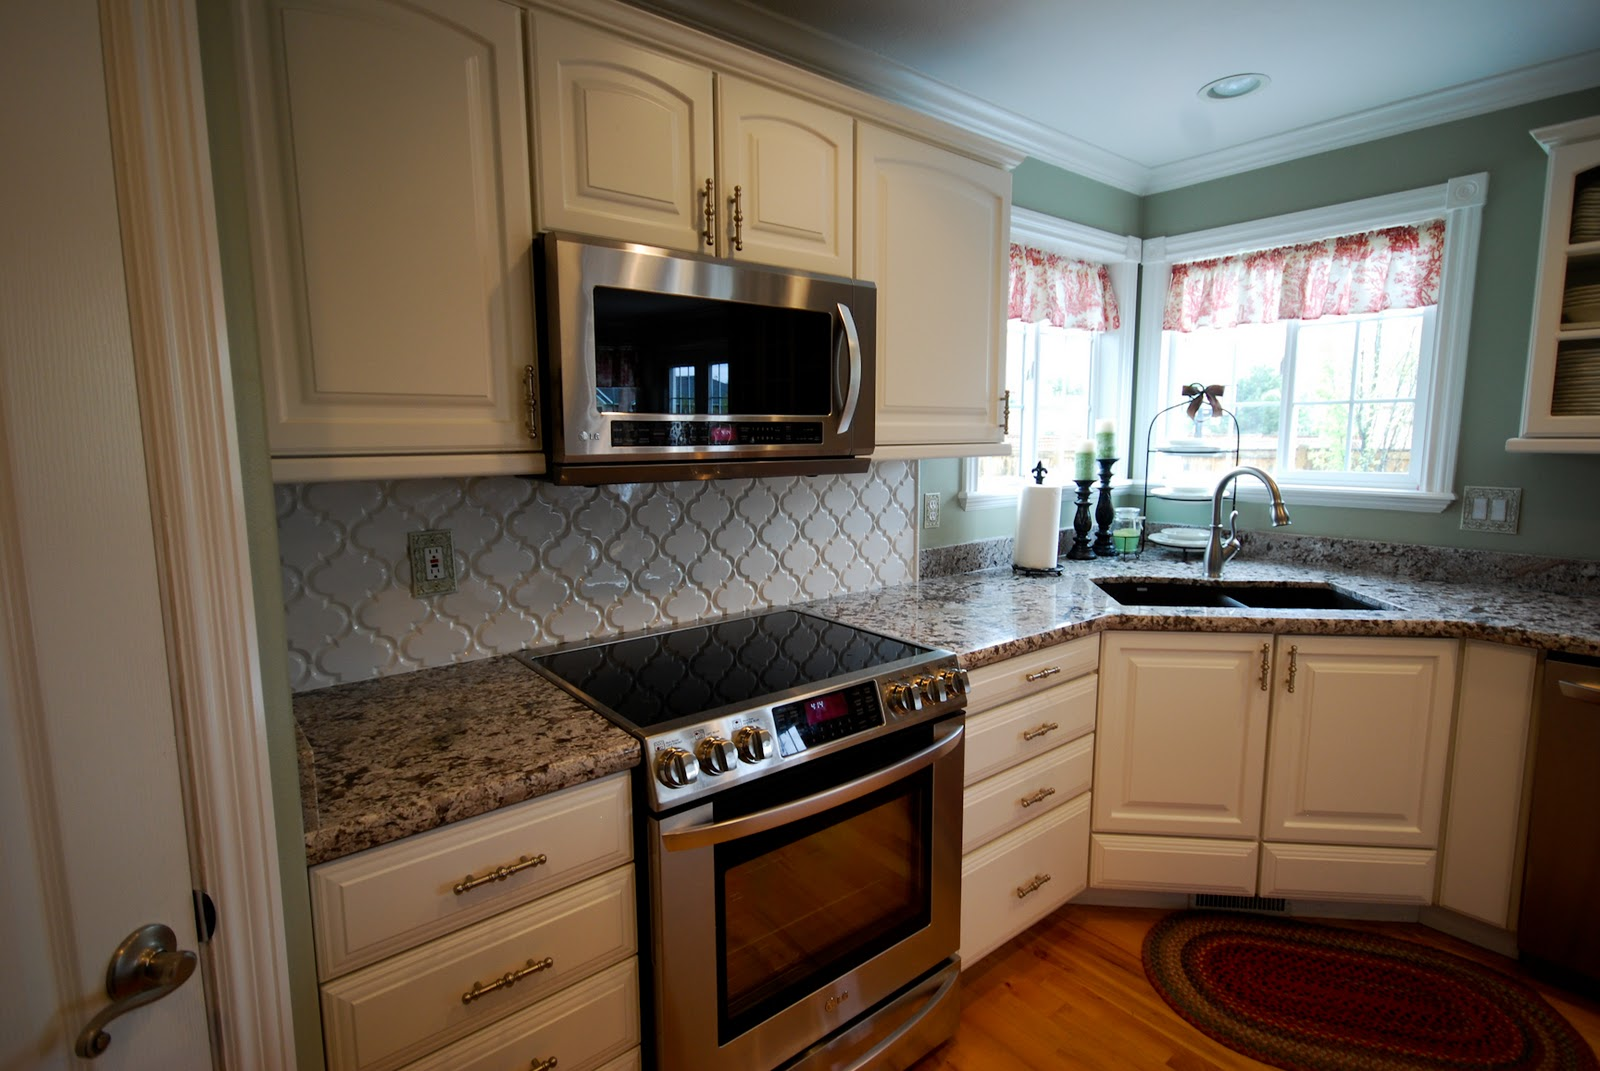 Gap Between Stove And Countertop The Granite Gurus Our Top 5 Granite Colors In 2011